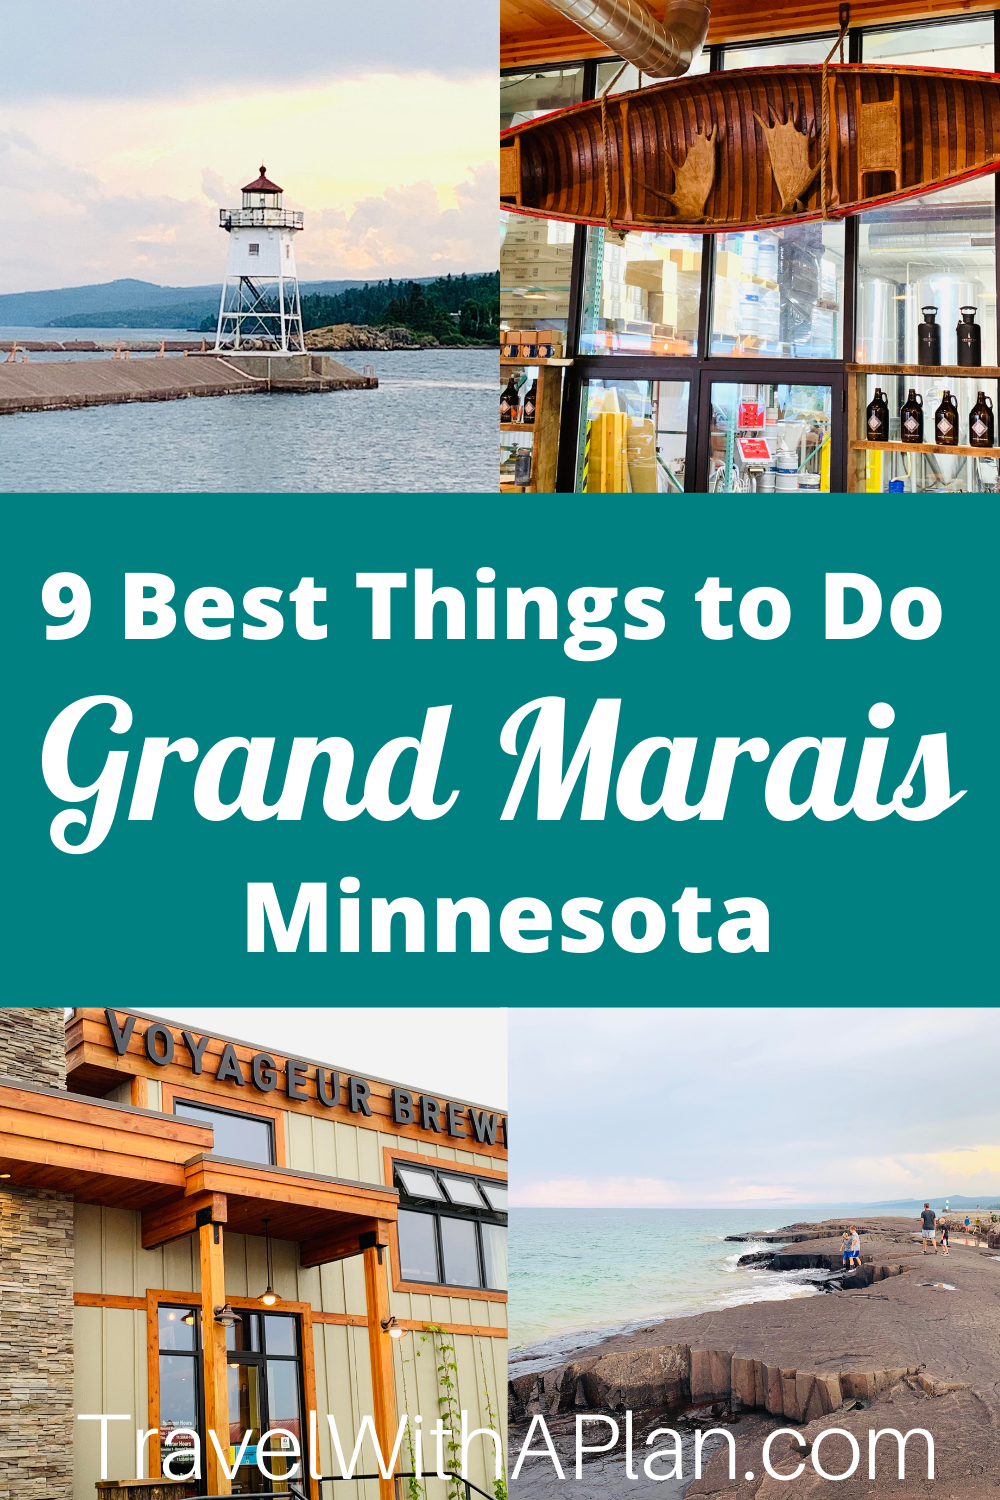 Discover the best things to do in Grand Marais, MN from Top US Family Travel Blog, Travel With A Plan!